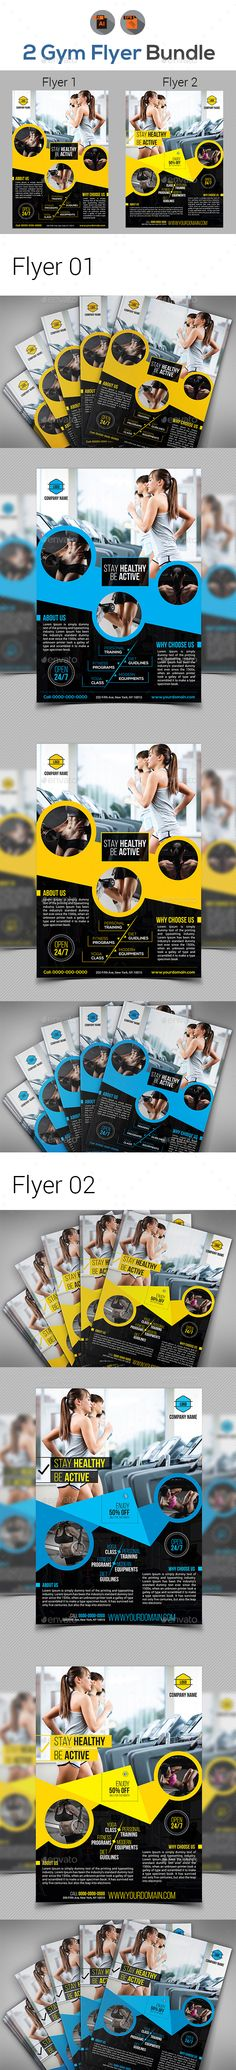 Fitness & Gym Flyers Templates Vector EPS, AI Illustrator